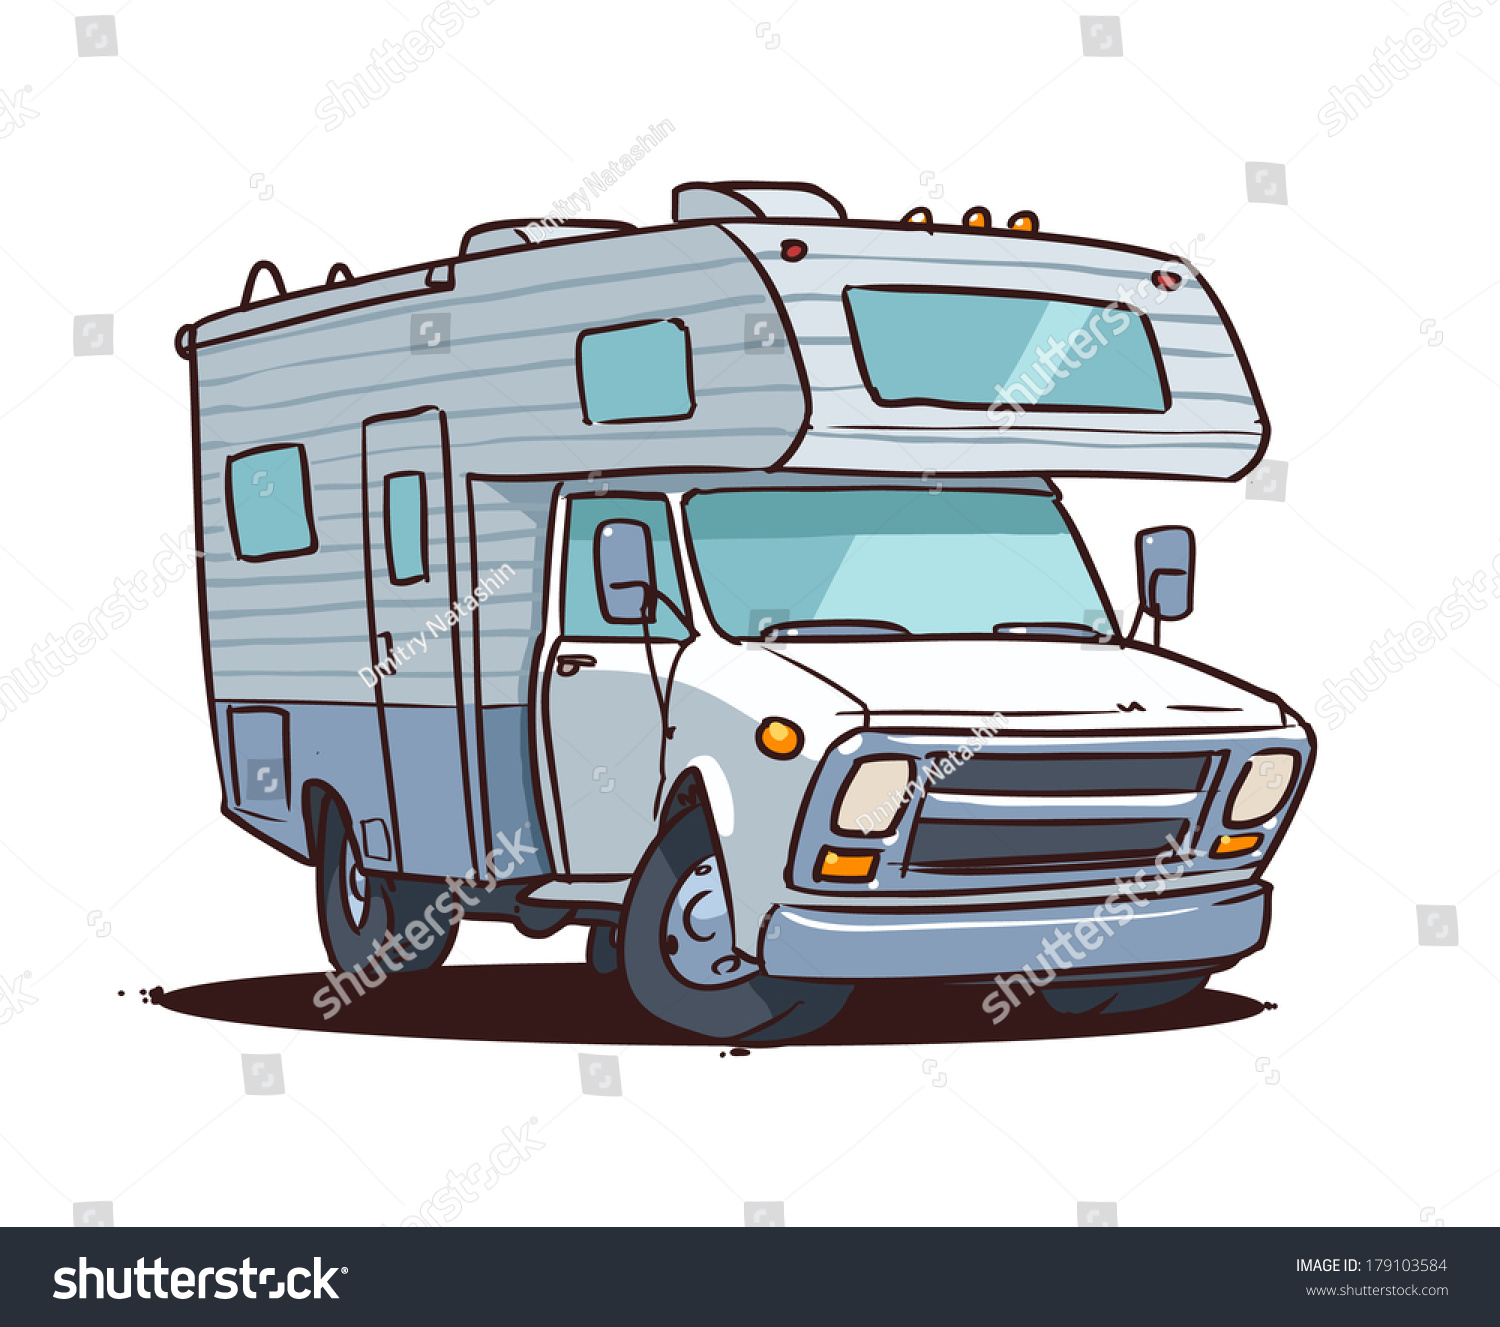 motorhome clip art with Stock Vector Cartoon C Ing Truck on Stock Illustration Yellow Fever Mosquito Standing Water Graphic Illustration Isolated White Background Eps  patible Image42594288 additionally Dolphin Wallpapers together with Bismillahirrahmanirrahim Calligraphy as well Pipeliner Wife On Pinterest Hard Hats Bling Shirts And Army Life Collection 5th Wheel C er Clipart Top 305th Wheel C er Clipart Microsoft Clip Art together with Saint Patricks Day Coloring Pages.